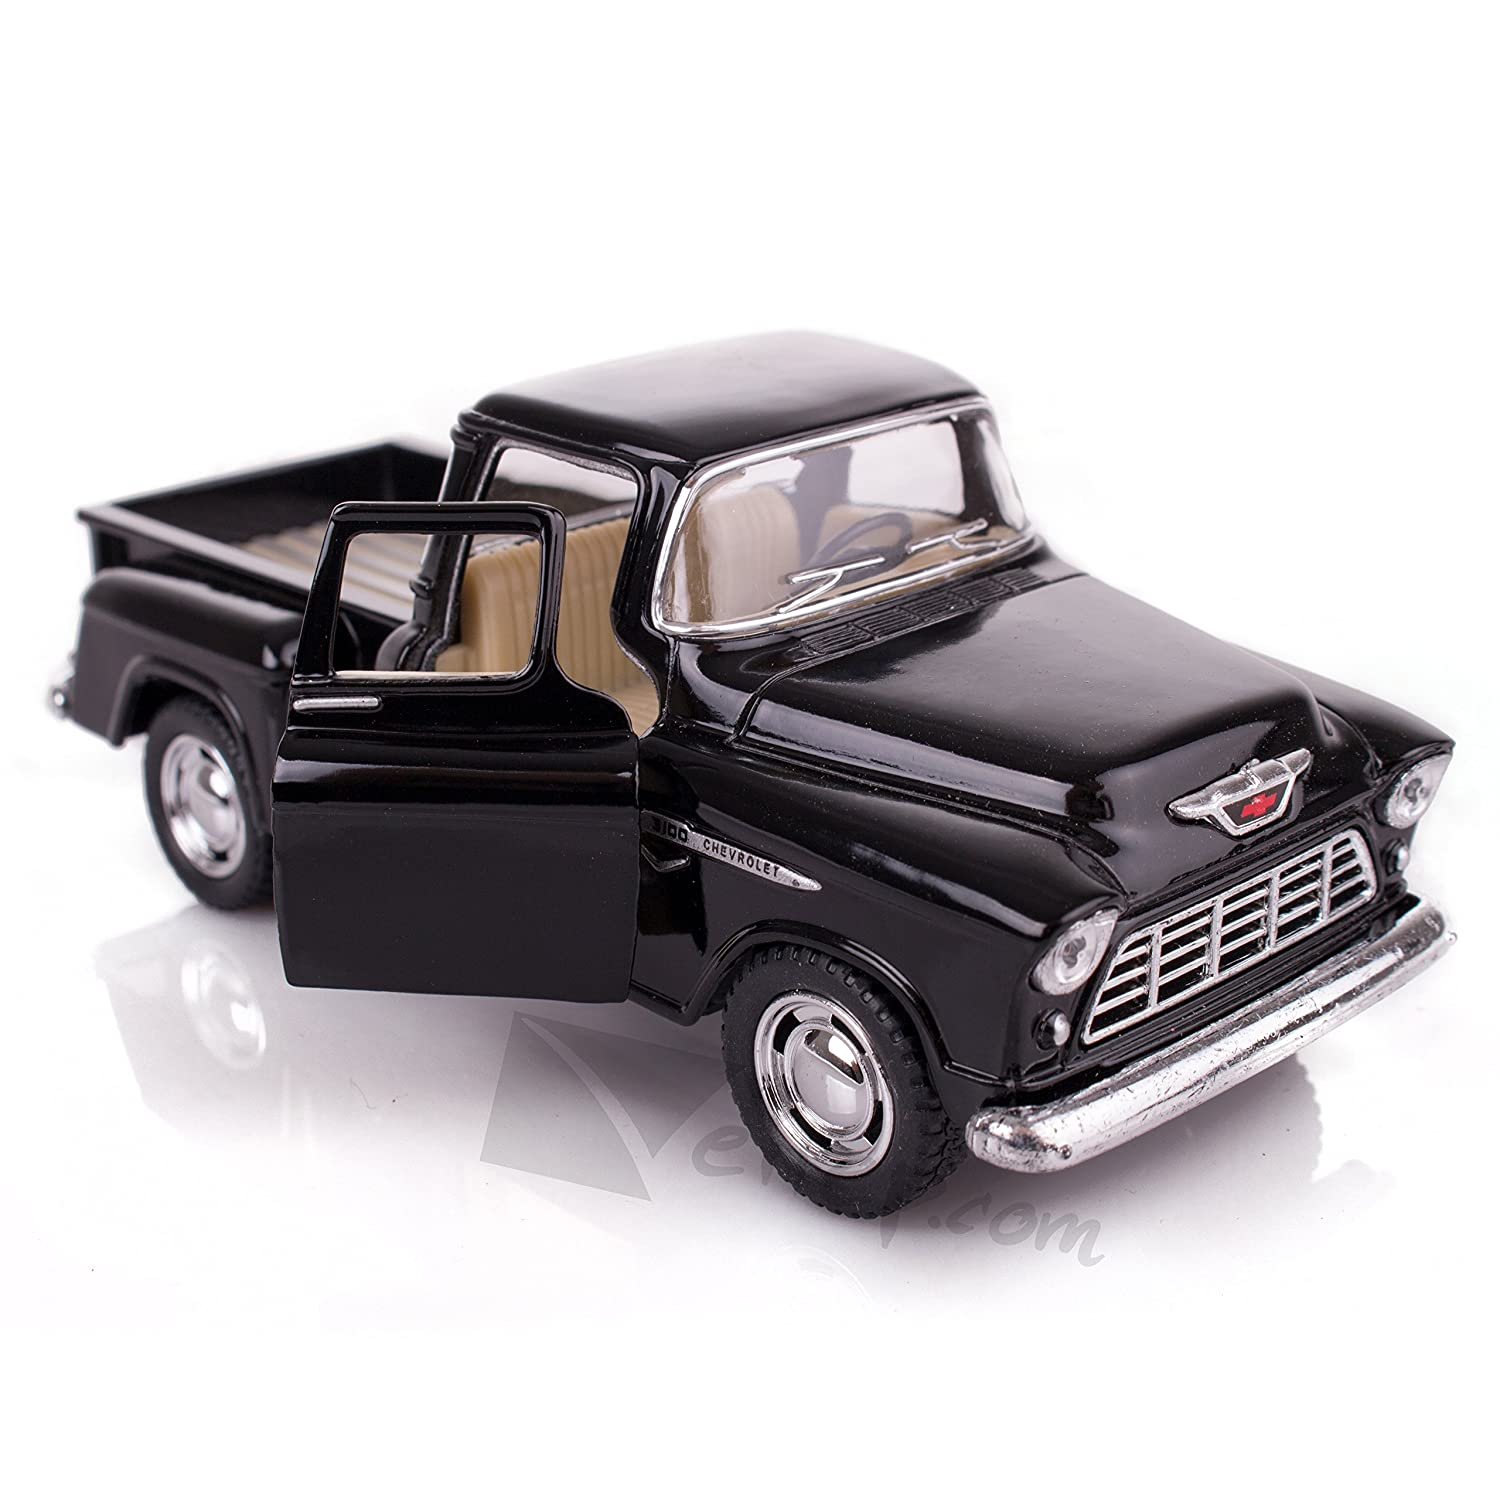 1955 Chevy Truck >> Black 1955 Chevy Stepside Pick Up Die Cast Collectible Toy Truck By Kinsmart